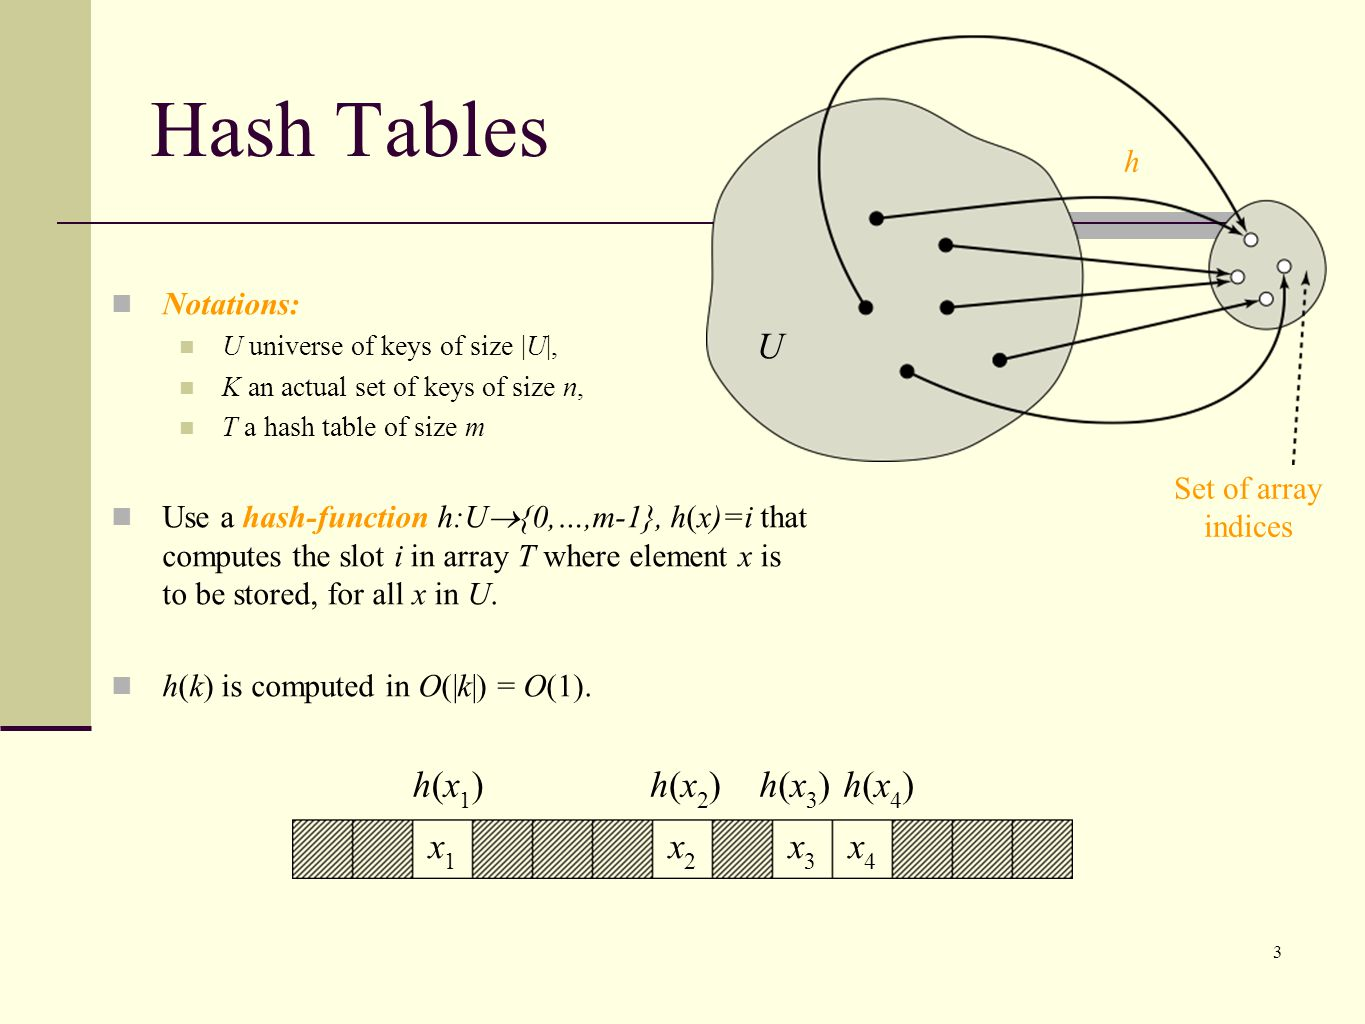 3 Notations: U universe of keys of size |U|, K an actual set of keys of size n, T a hash table of size m Use a hash-function h:U {0,…,m-1}, h(x)=i that computes the slot i in array T where element x is to be stored, for all x in U.